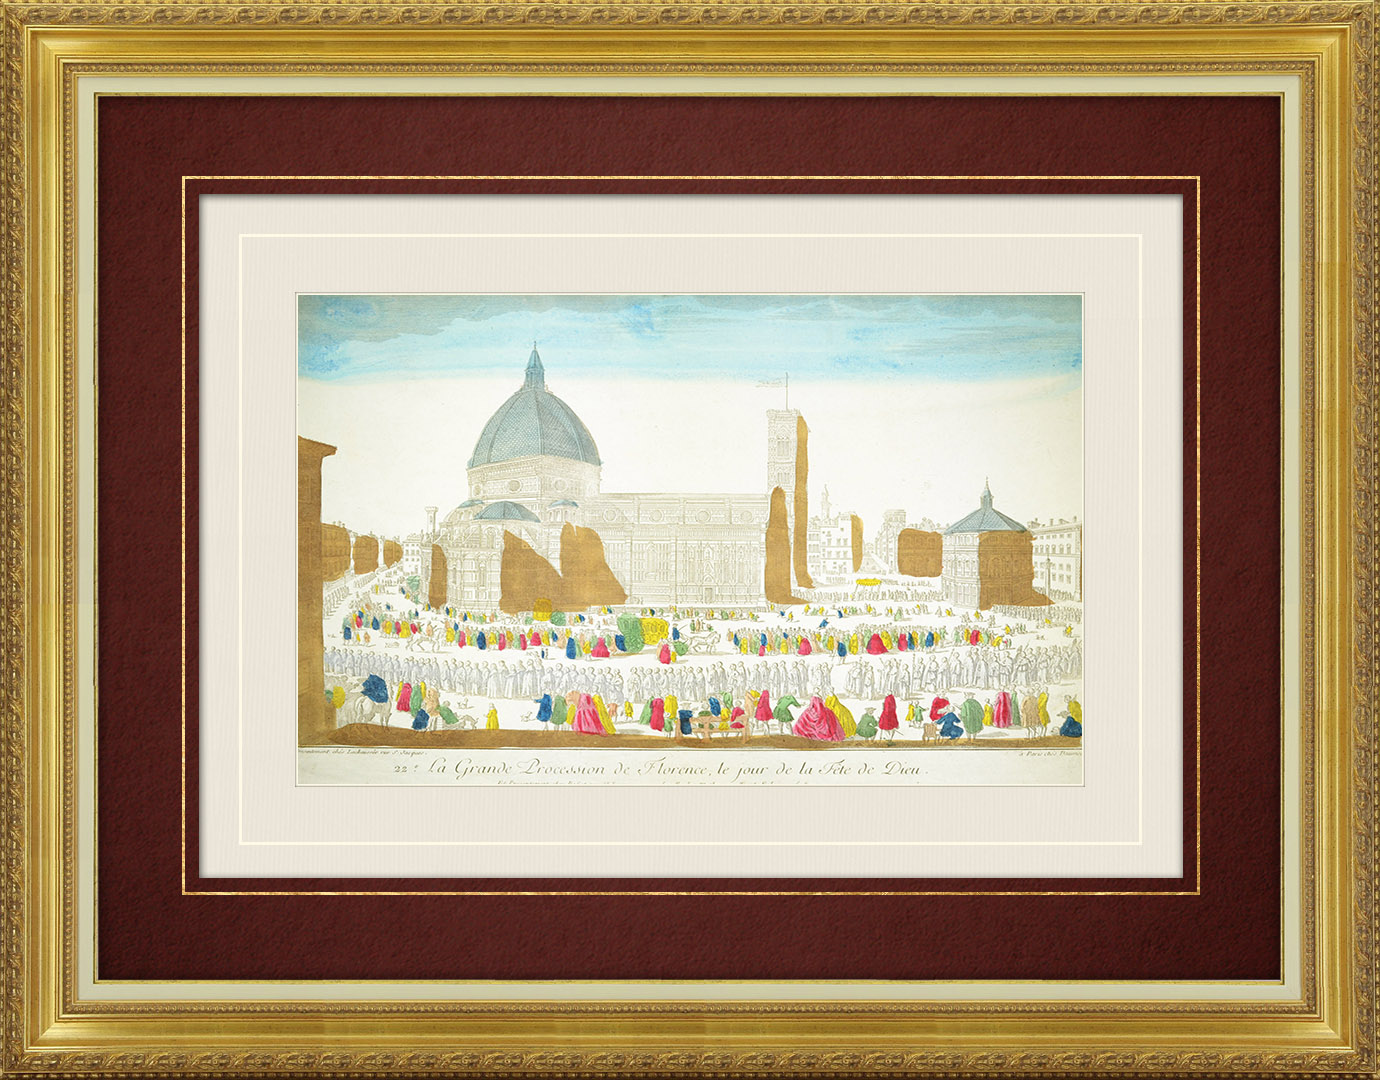 18th Century optical view in original watercolors of the Corpus Christi Procession in Florence (Italy)